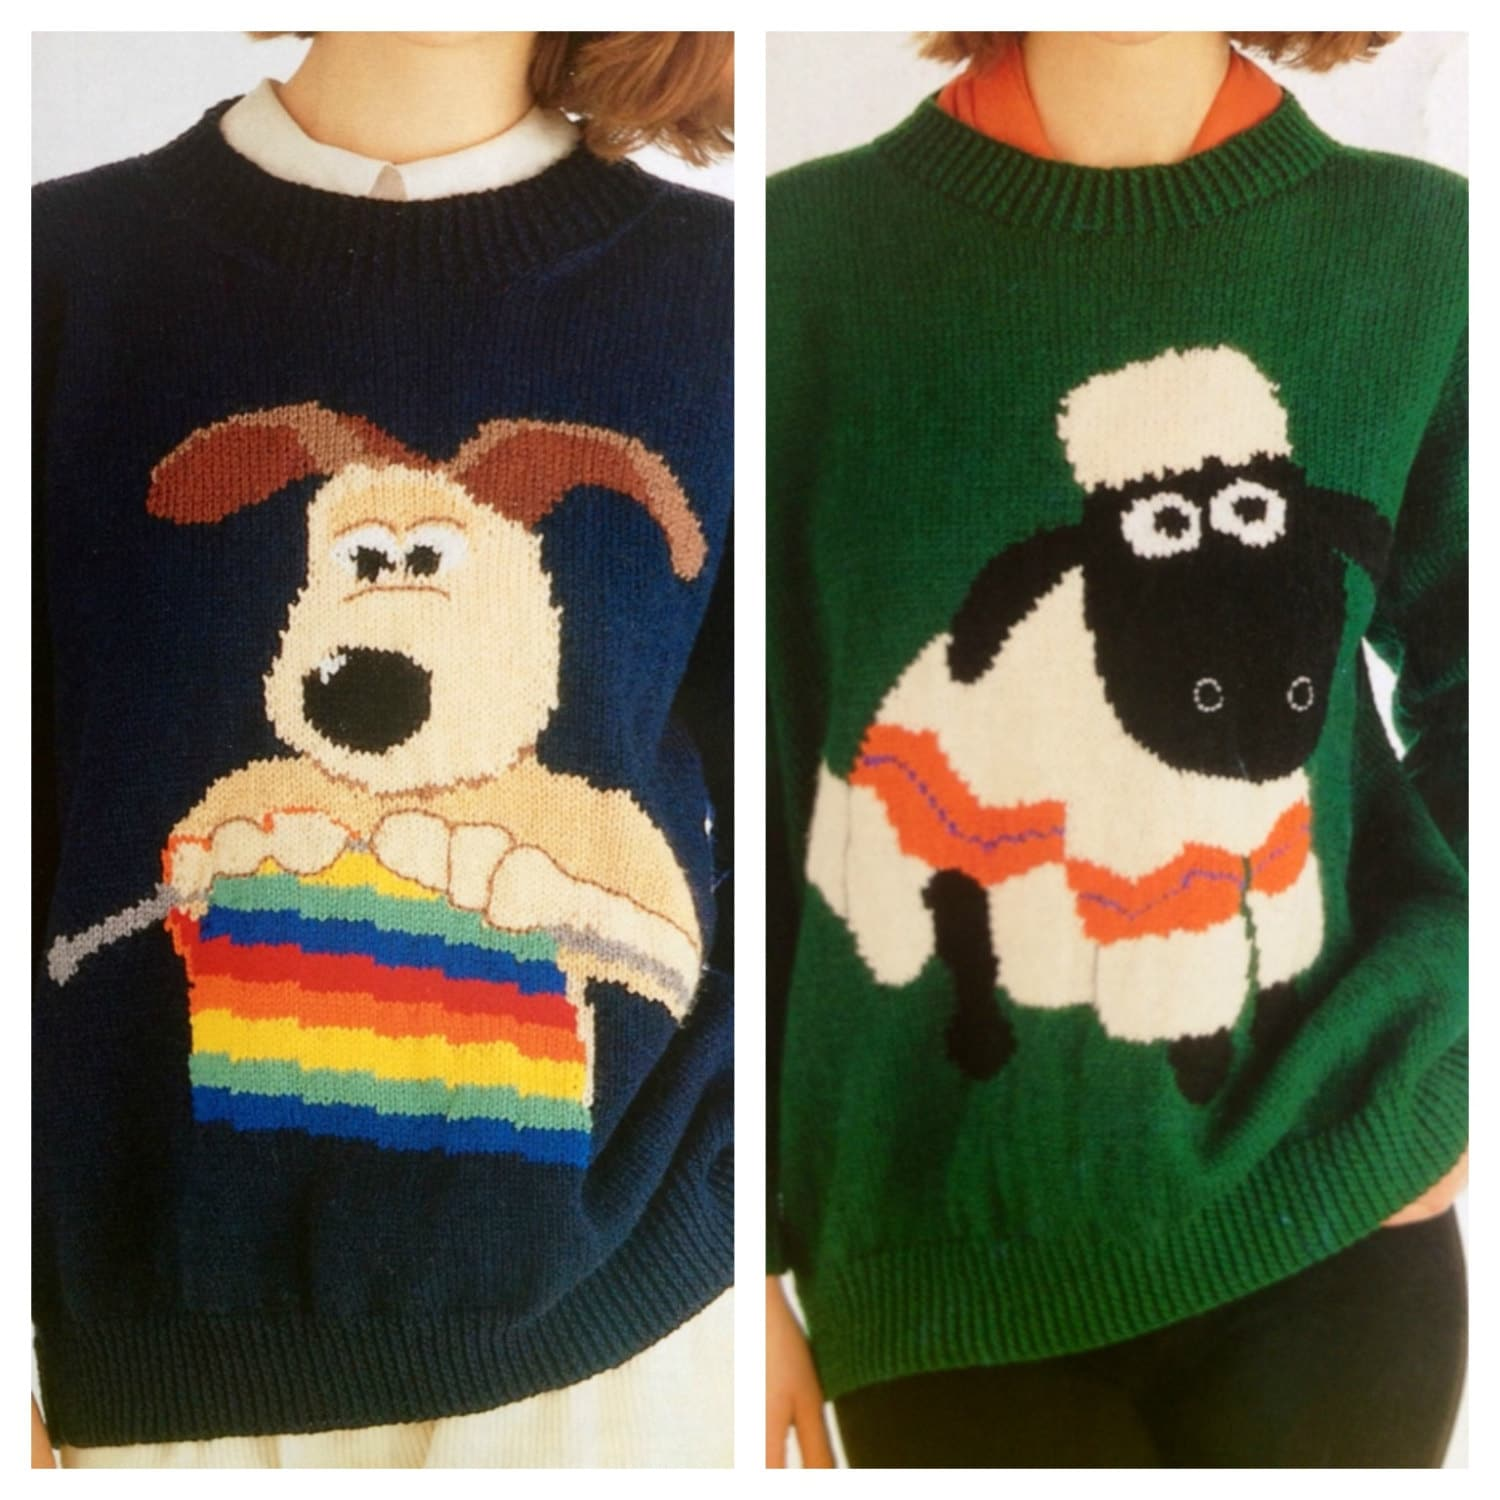 wallace and gromit and shaun the sheep knitting patterns